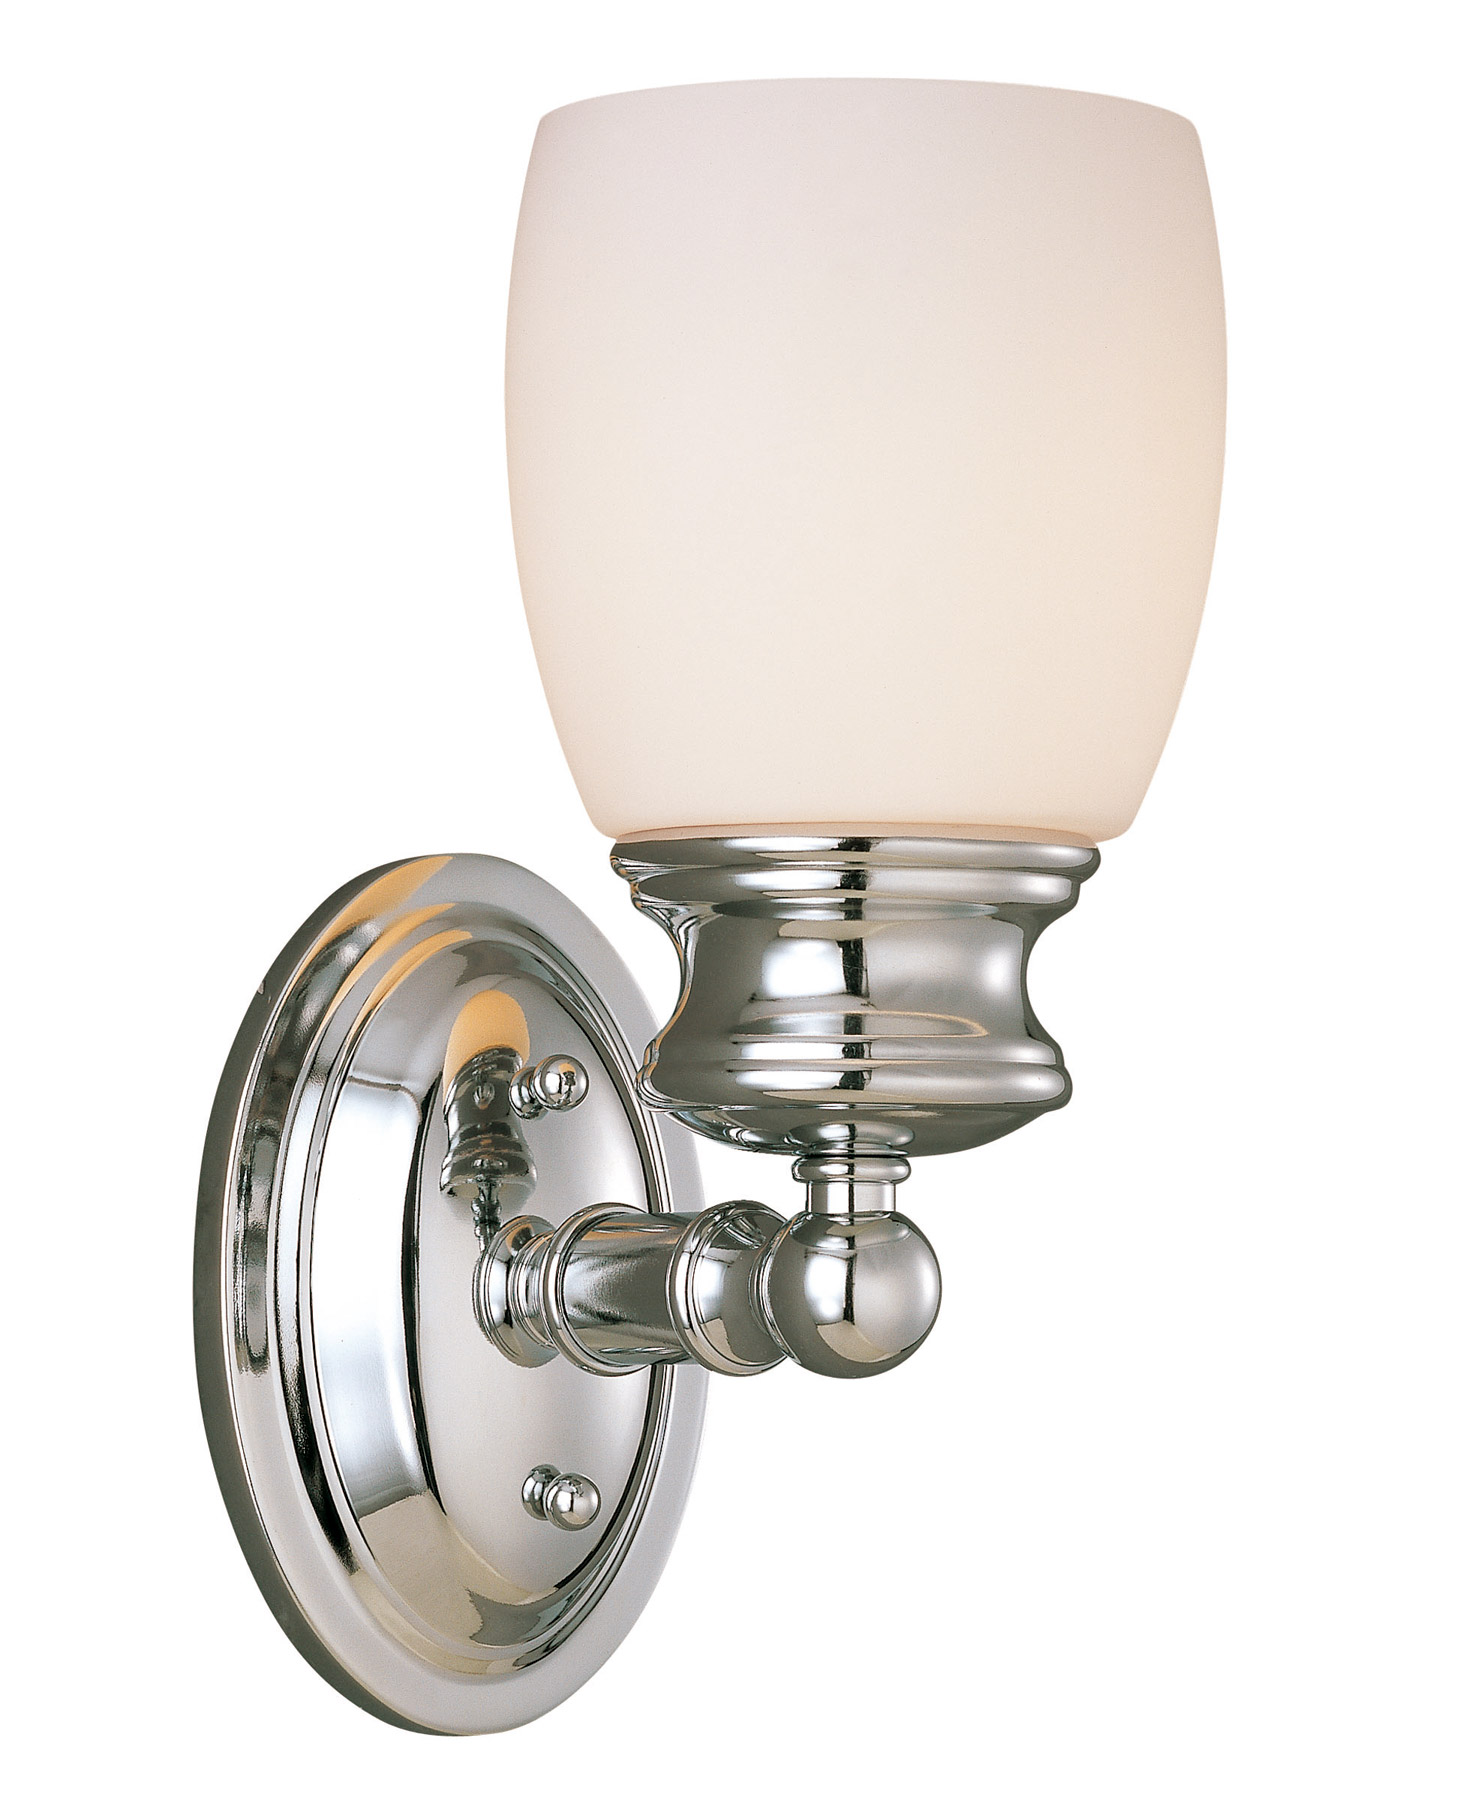 Chrome Wall Sconces Bathroom : Savoy House 8-9127-1-11 Chrome Bath Wall Sconce